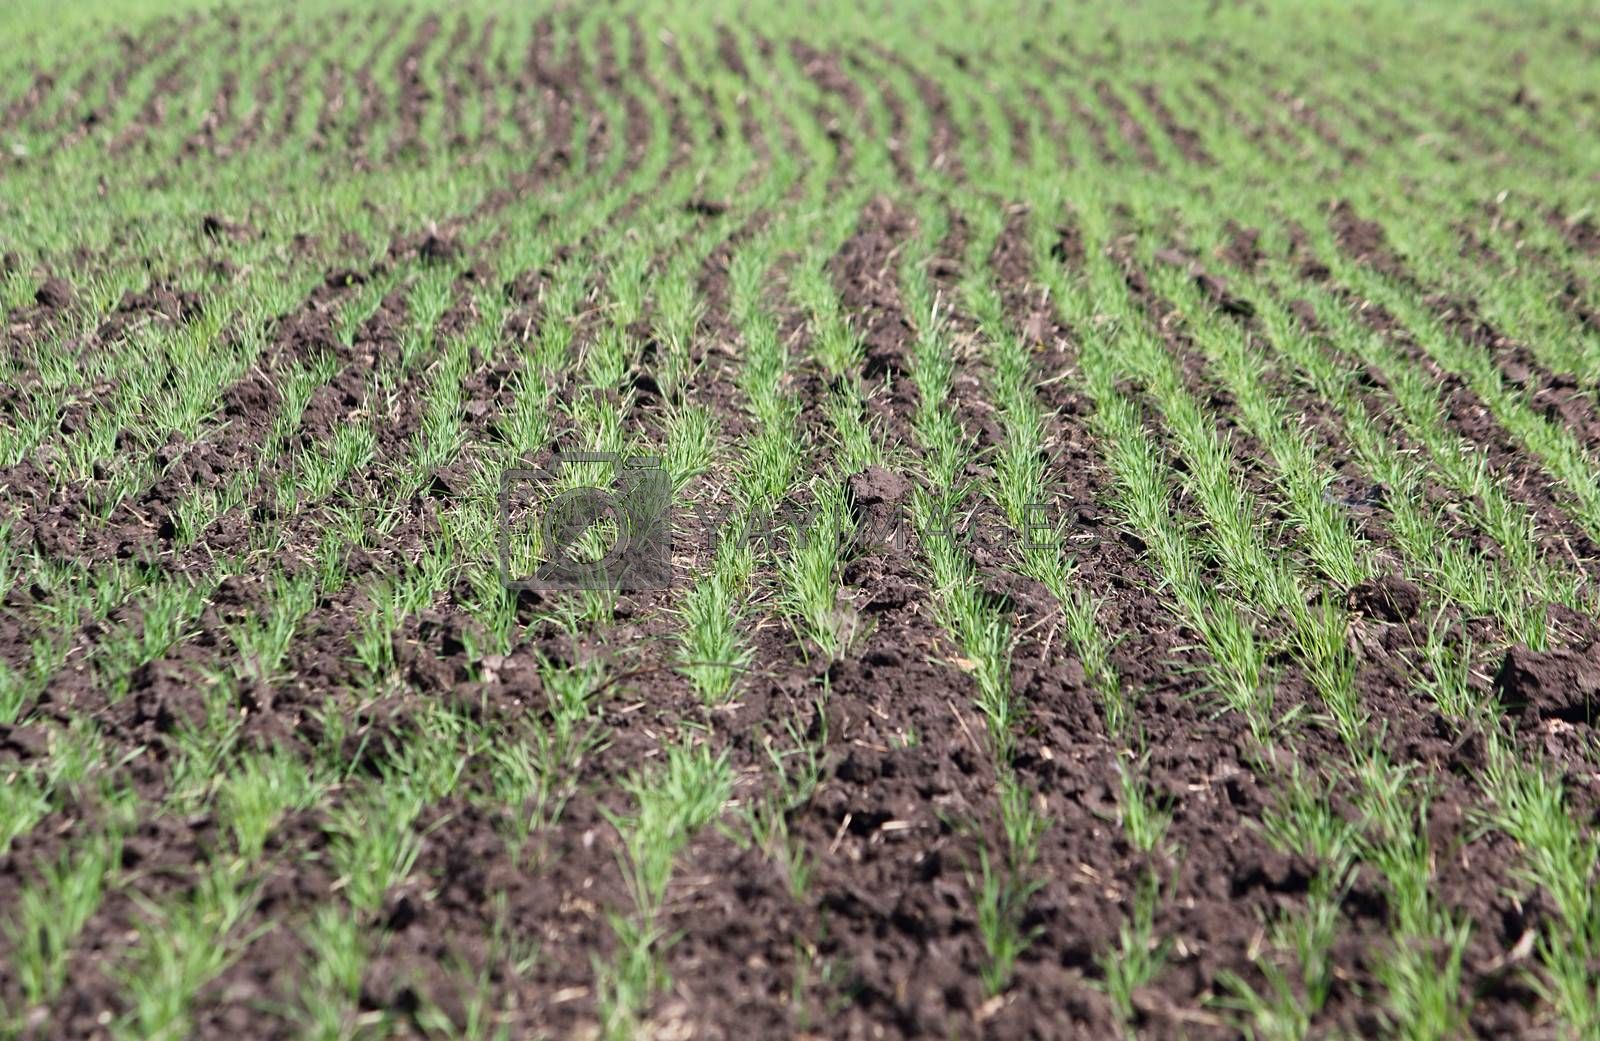 Field with a little green sprouts